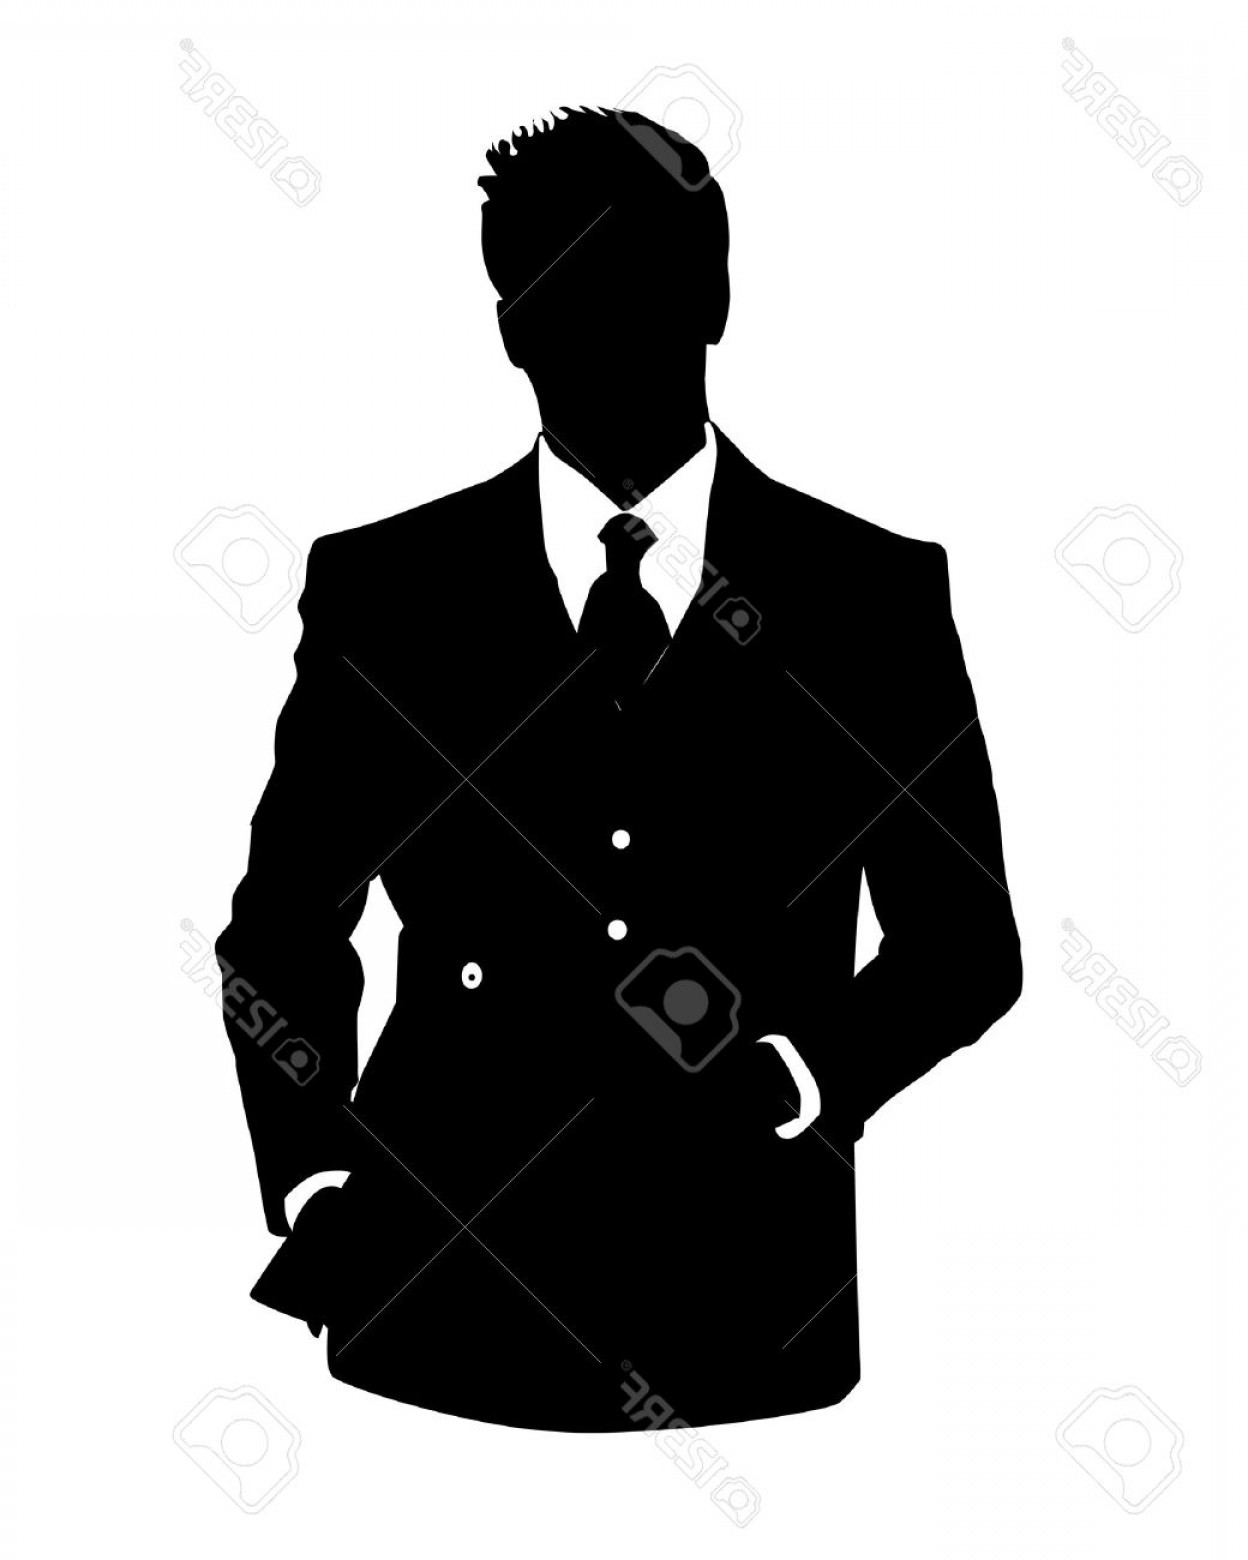 1248x1560 Photographic Illustration Of Man In Business Suit As User Icon